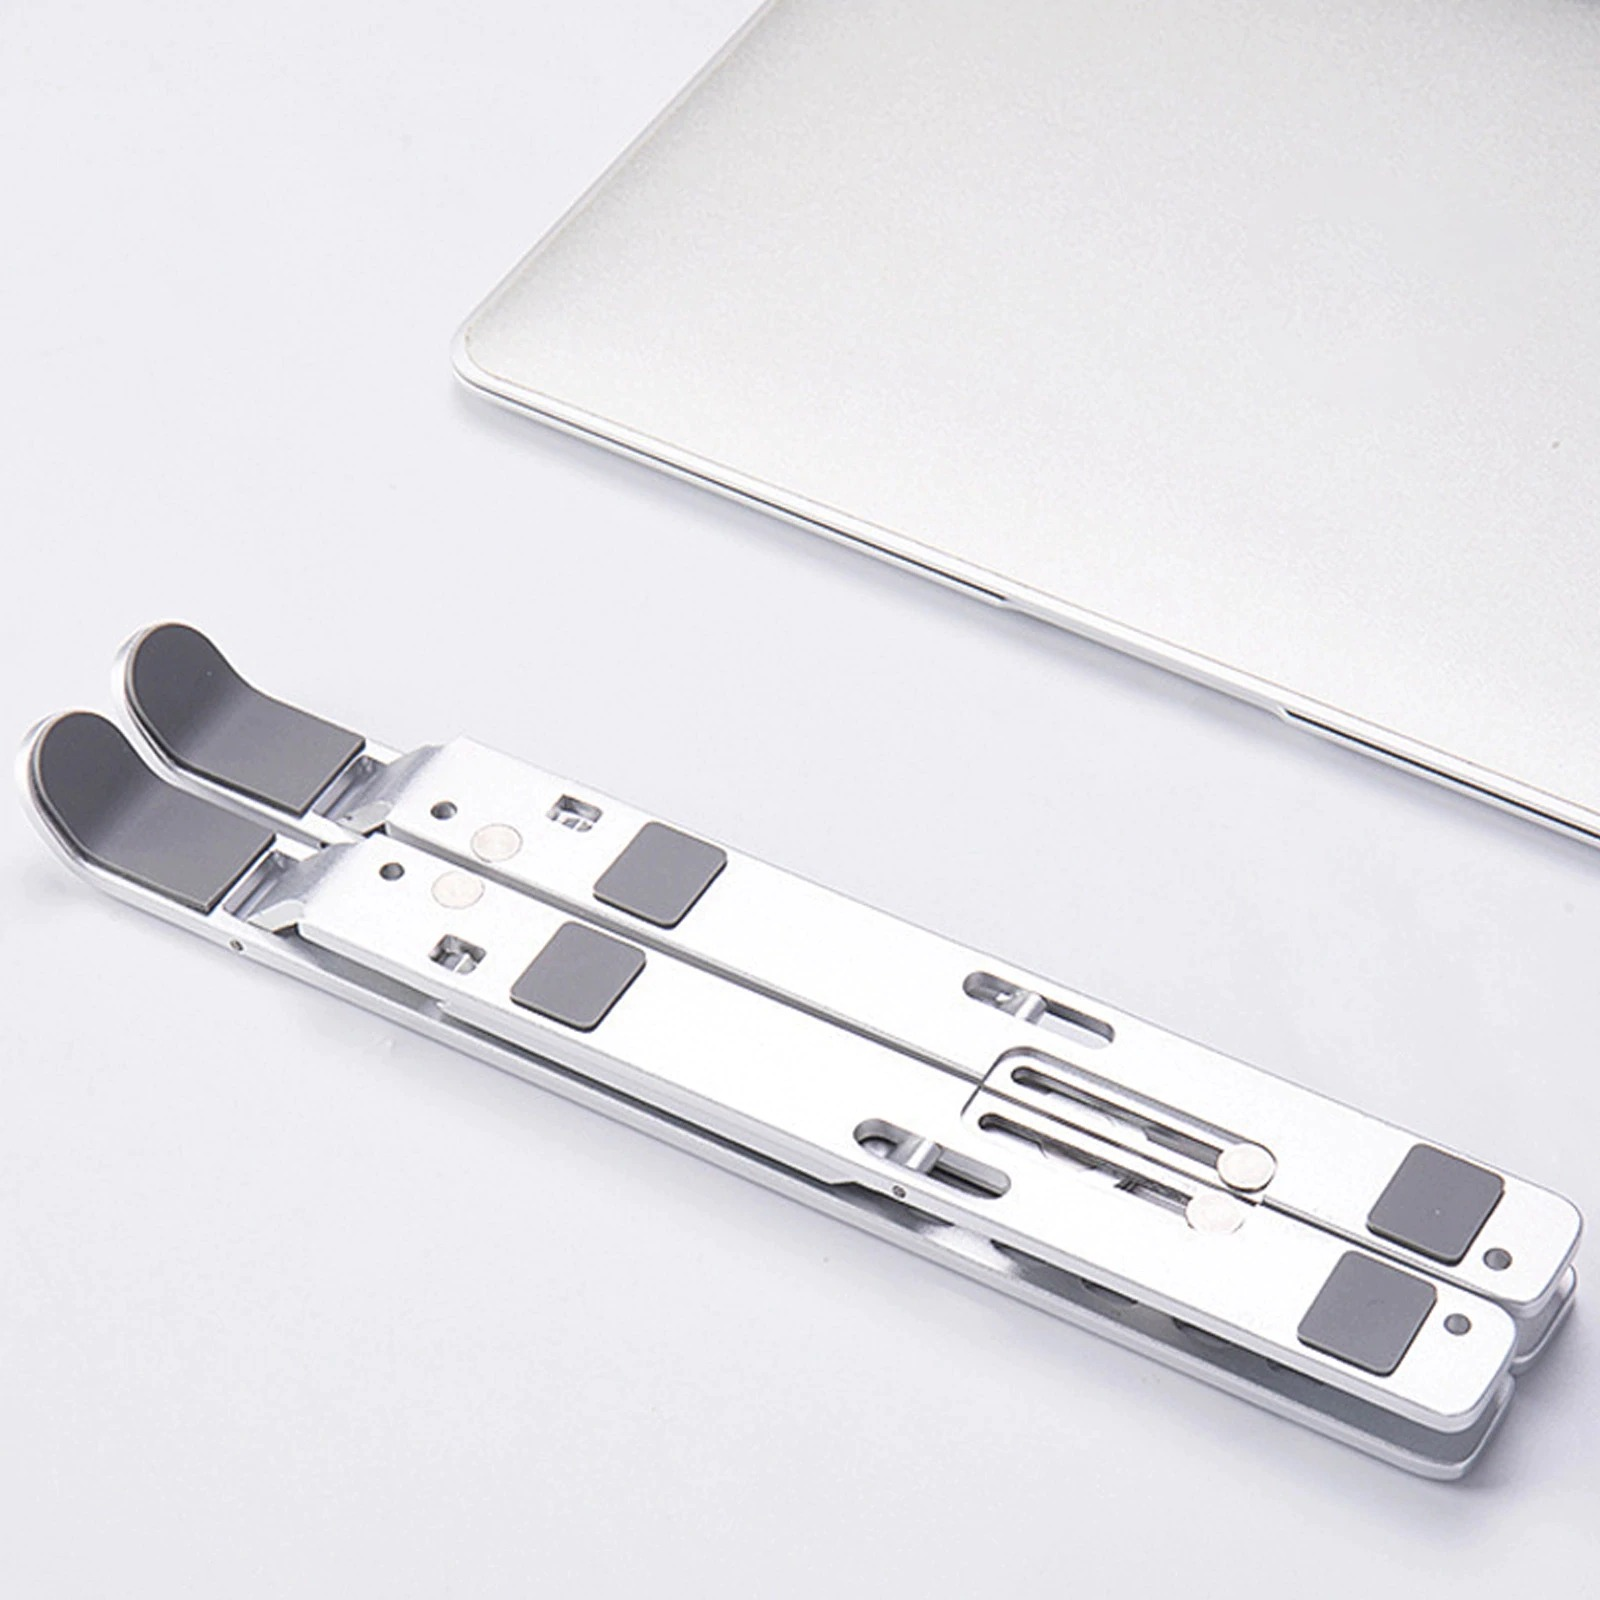 Portable Laptop Stand Foldable Support Base Notebook Stand For MacBook Pro